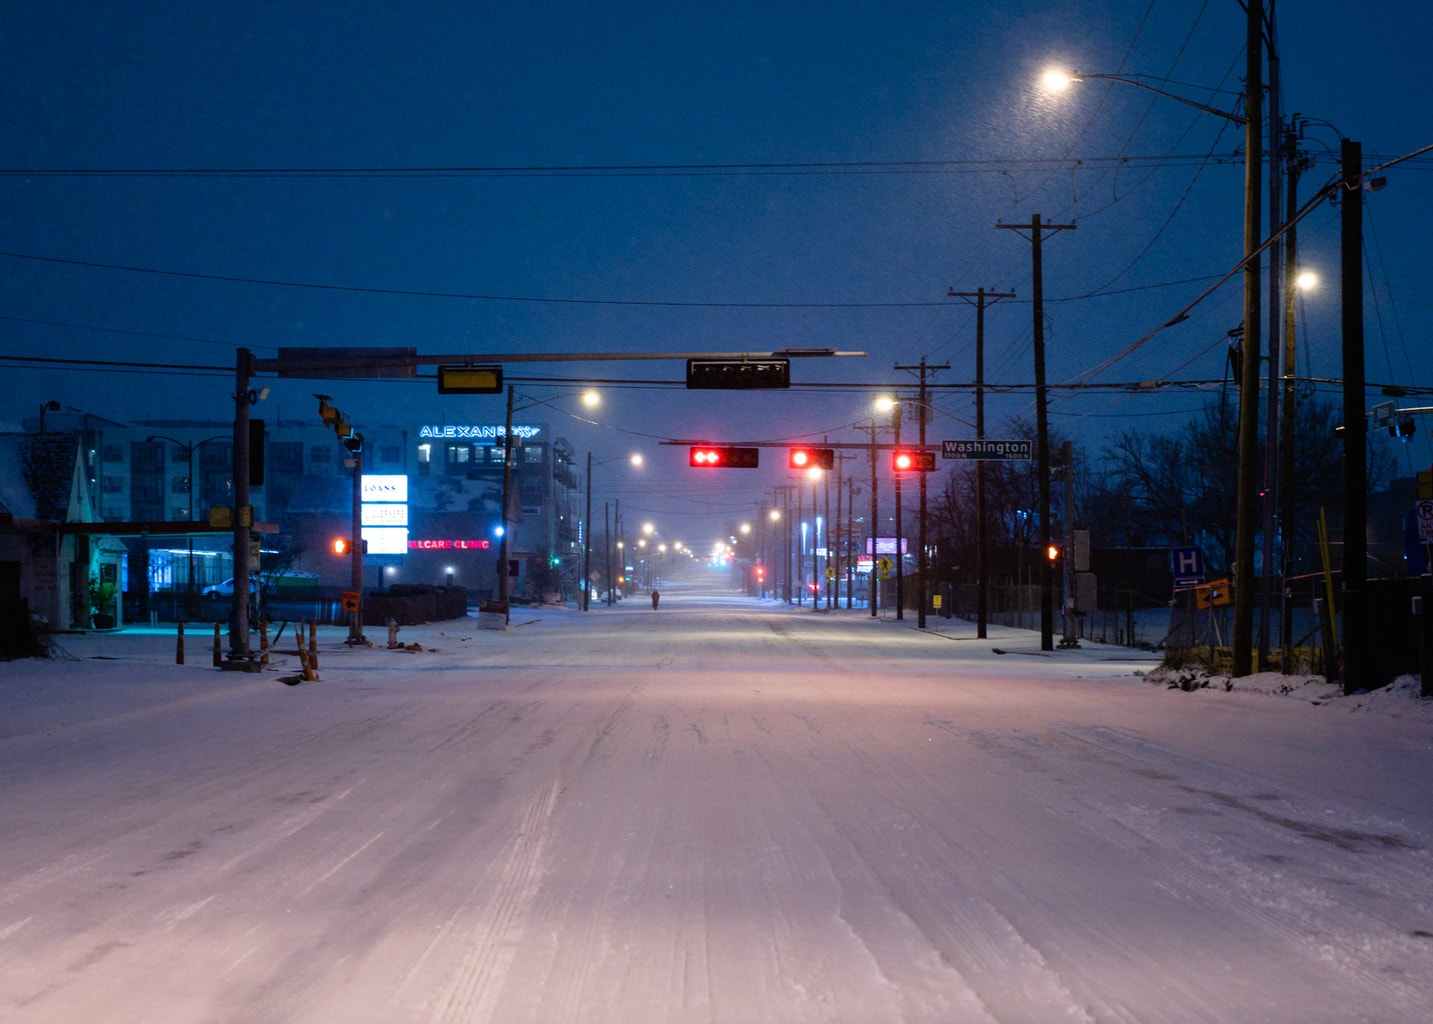 Ross Avenue in Dallas covered with snow at night